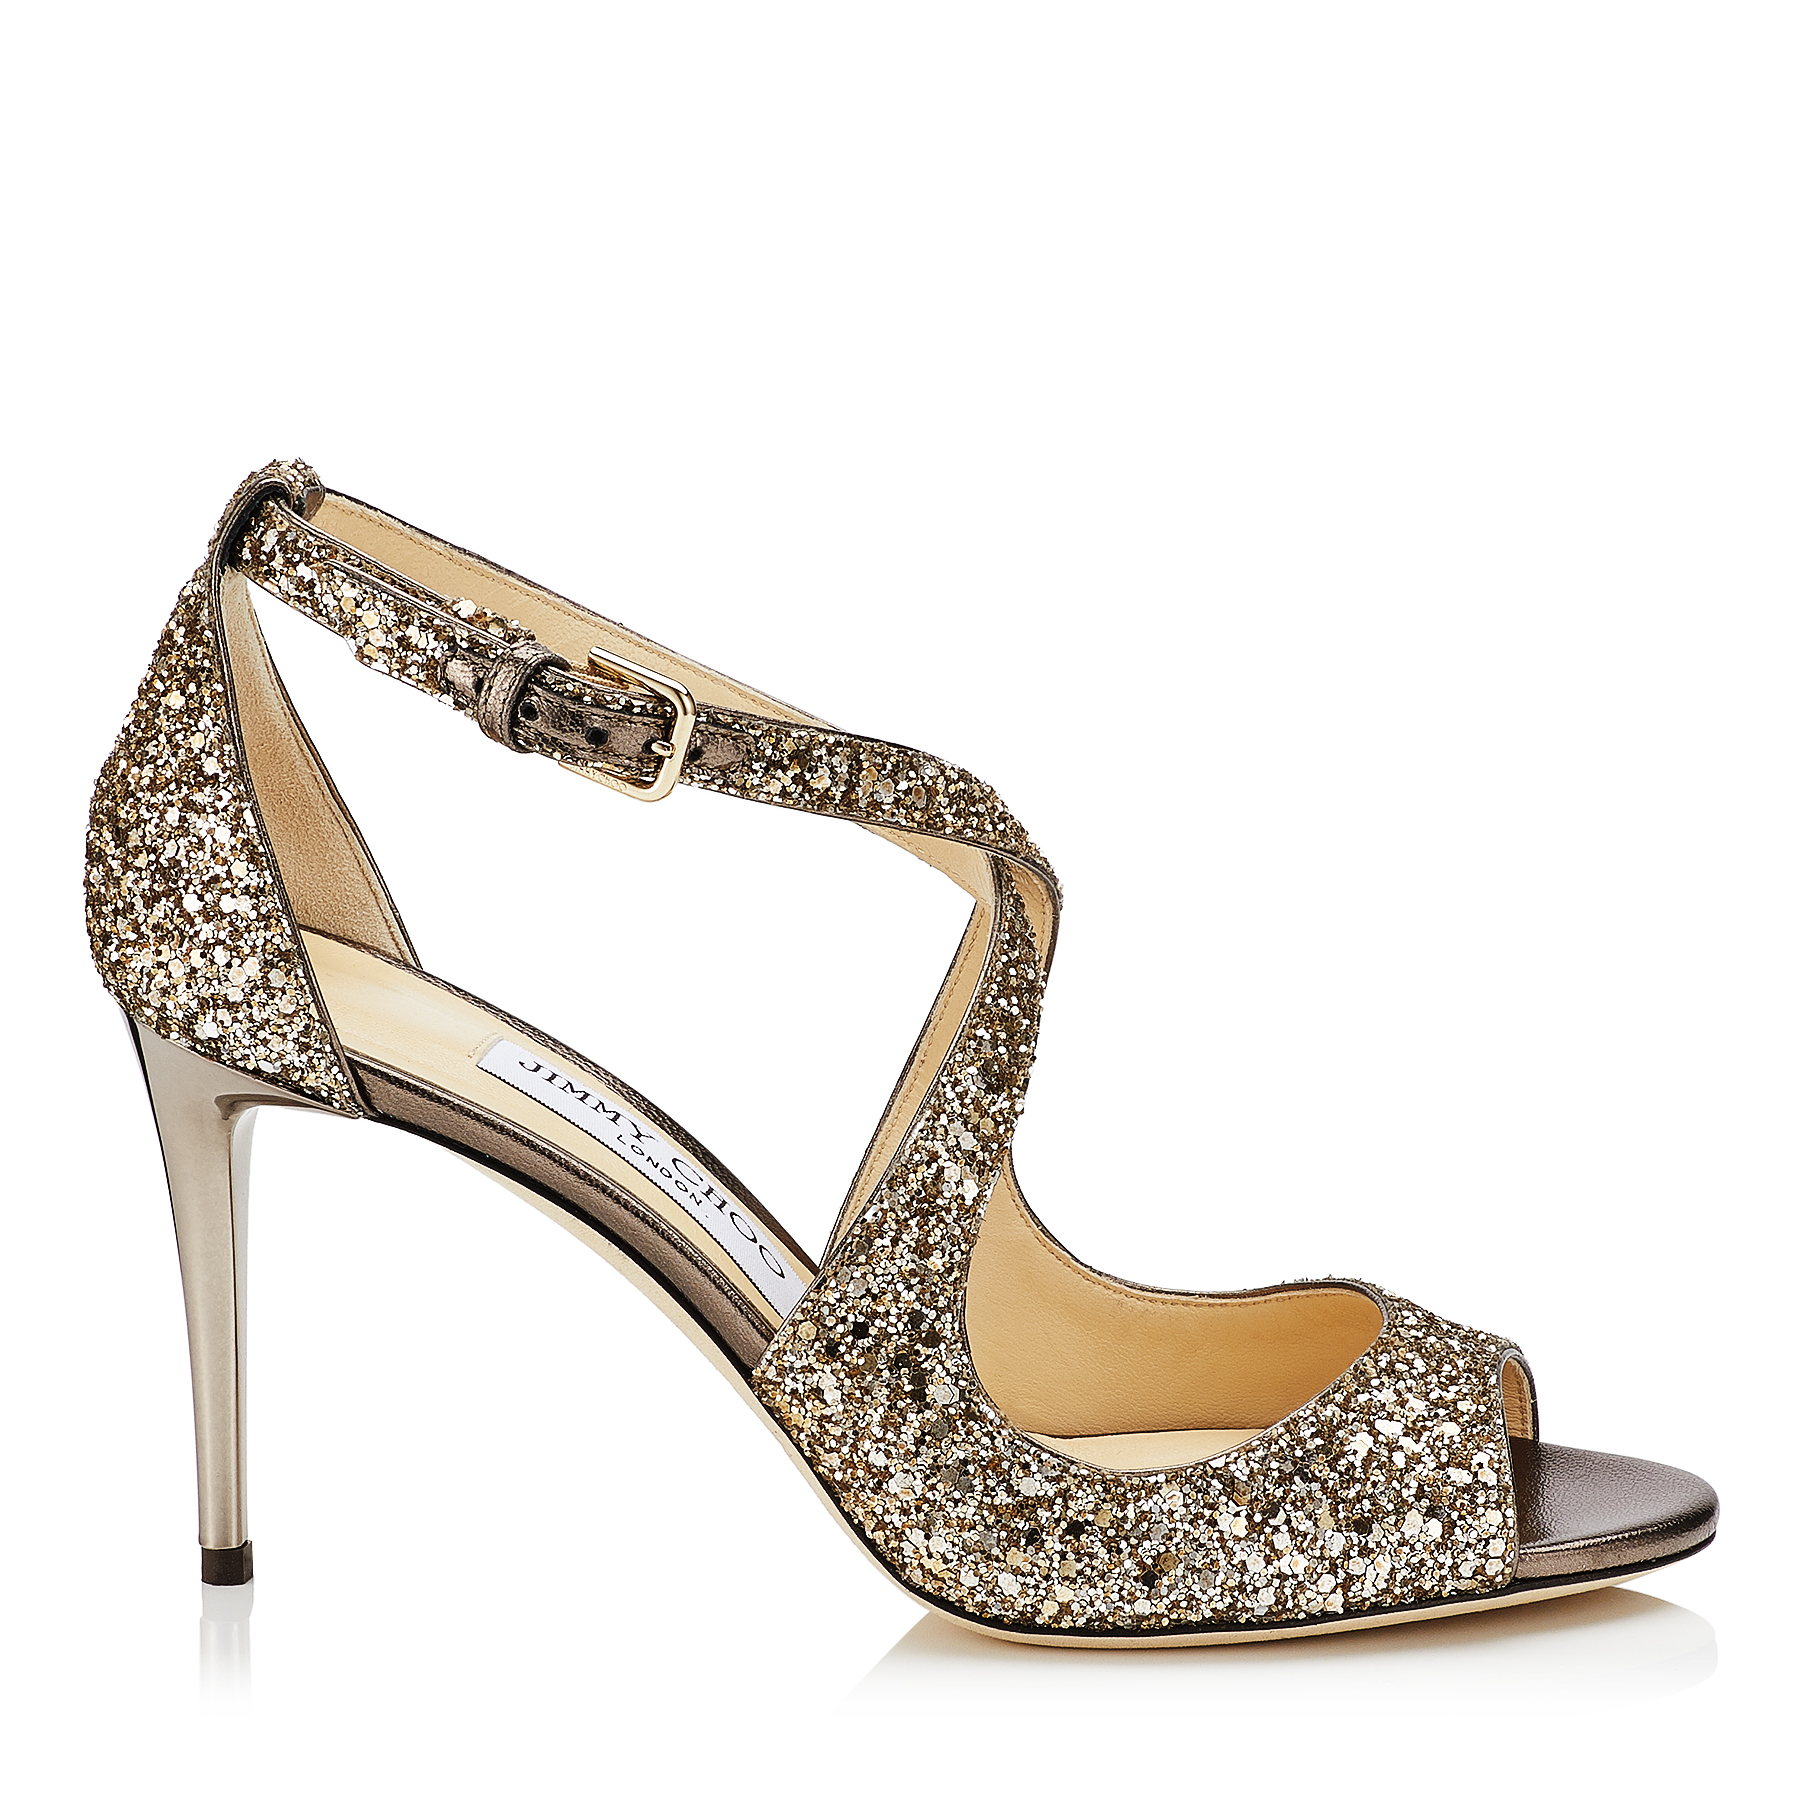 EMILY 85 Antique Gold Shadow Coarse Glitter Fabric Sandals